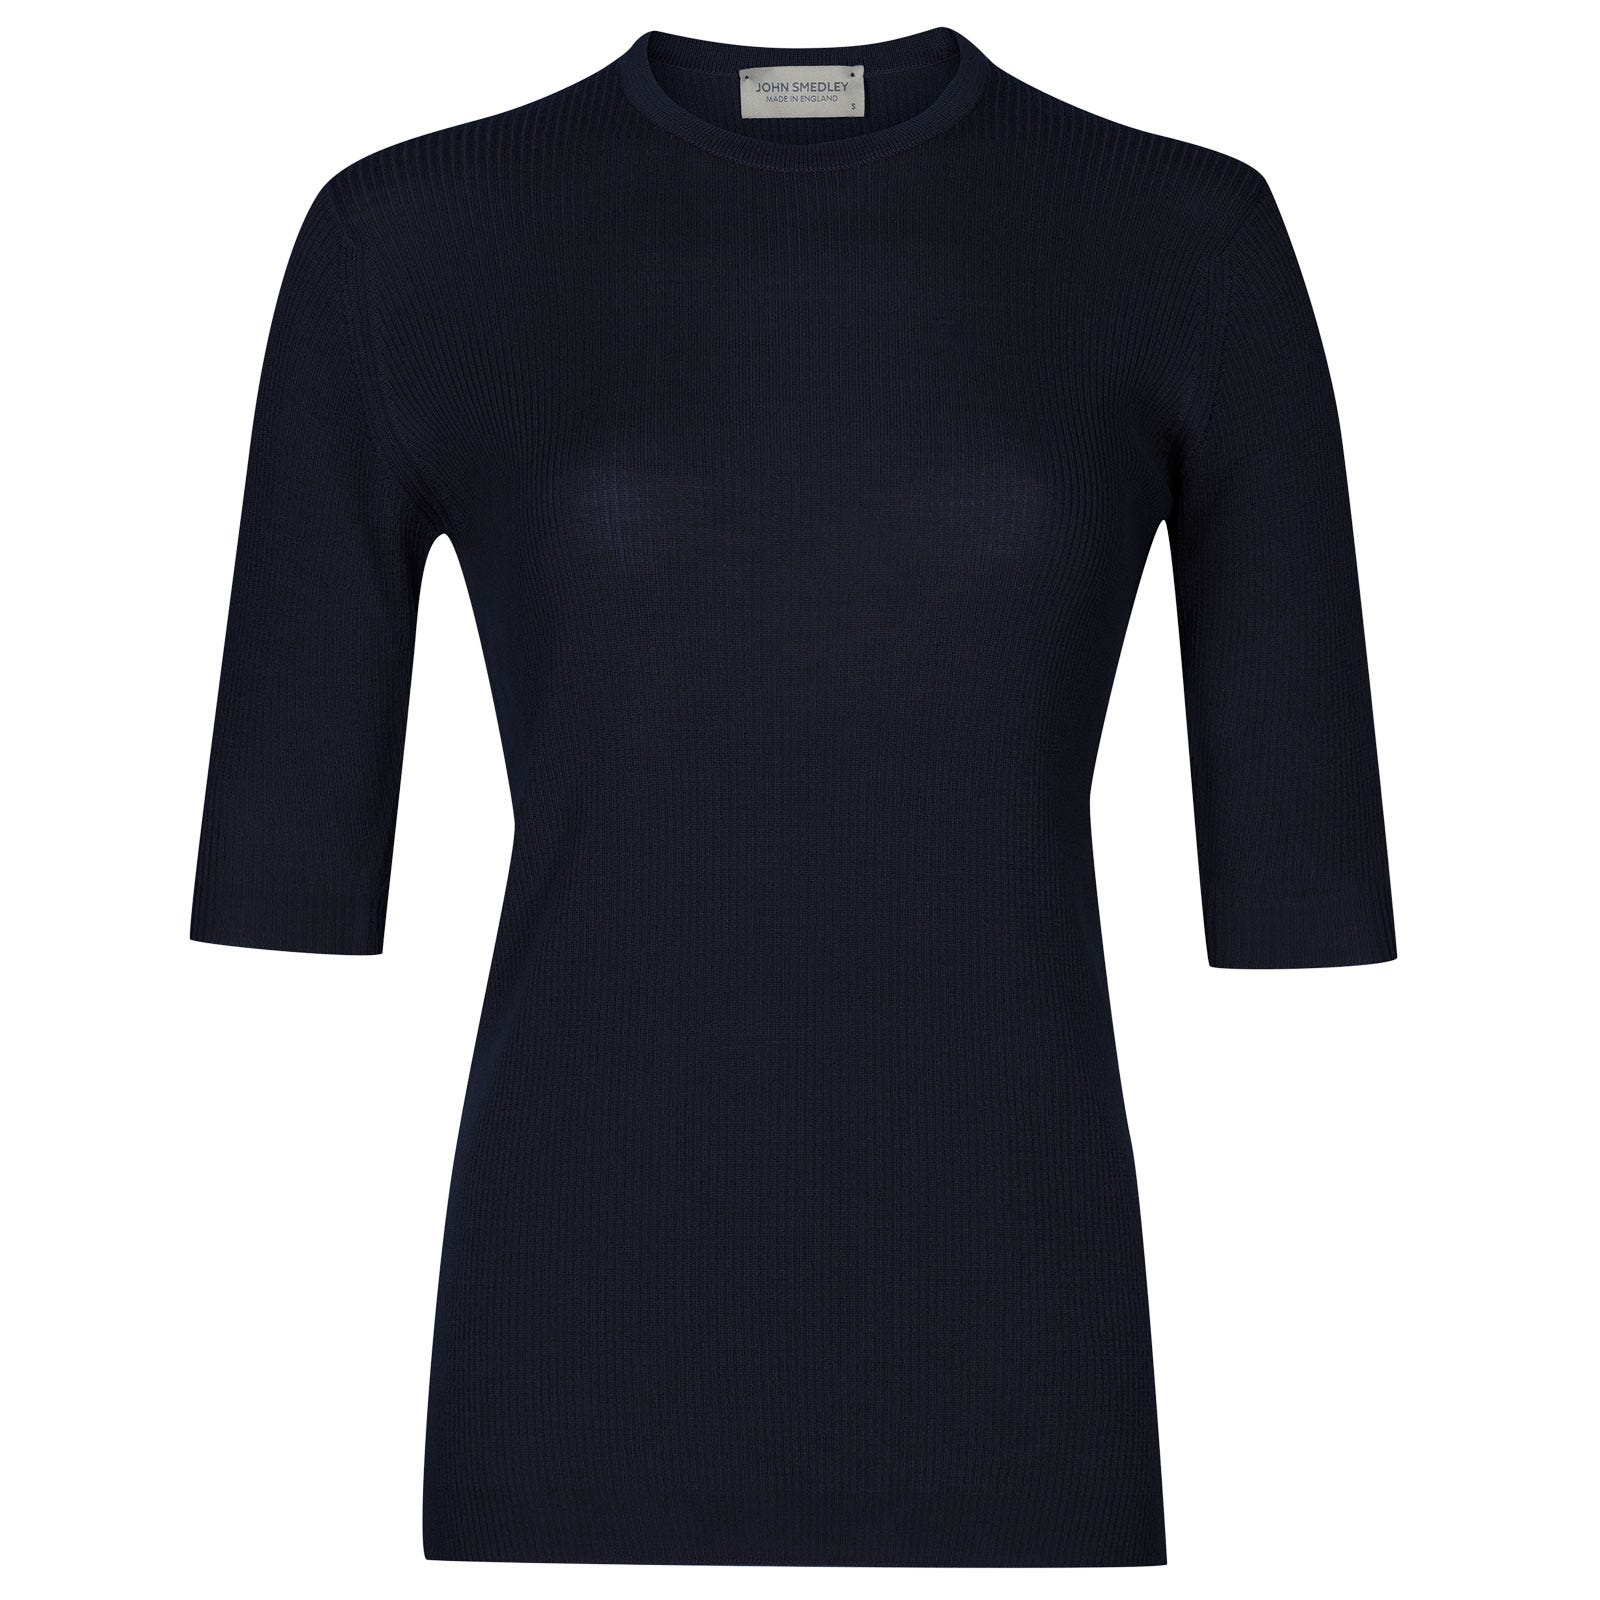 John Smedley wilis Merino Wool Sweater in Midnight-S